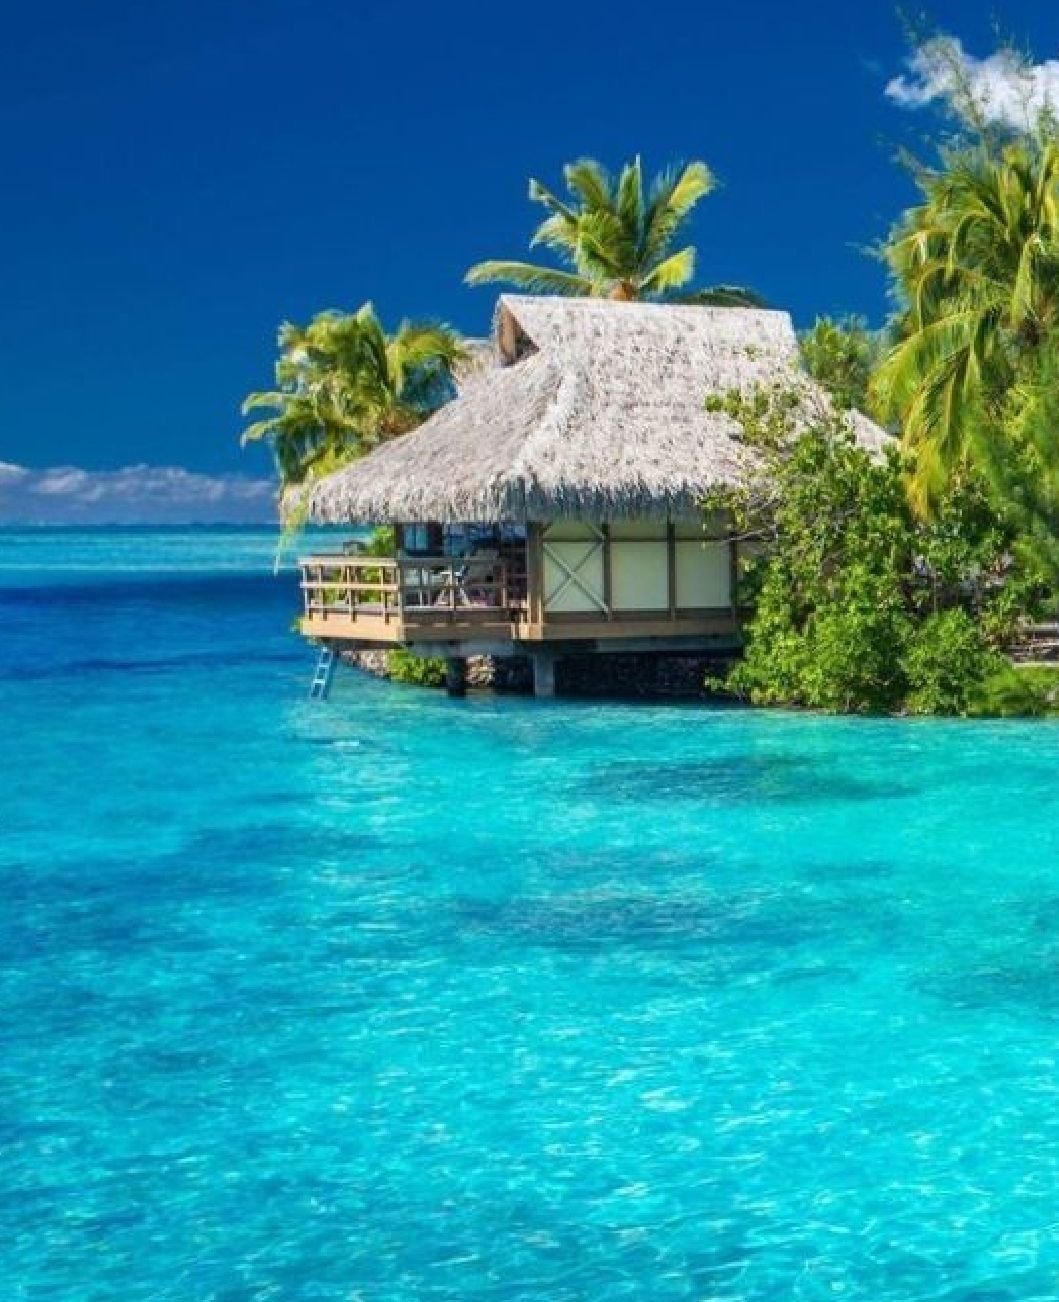 Seychelles Island Beaches: The Islands In The Seychelles Have Some Of The Most